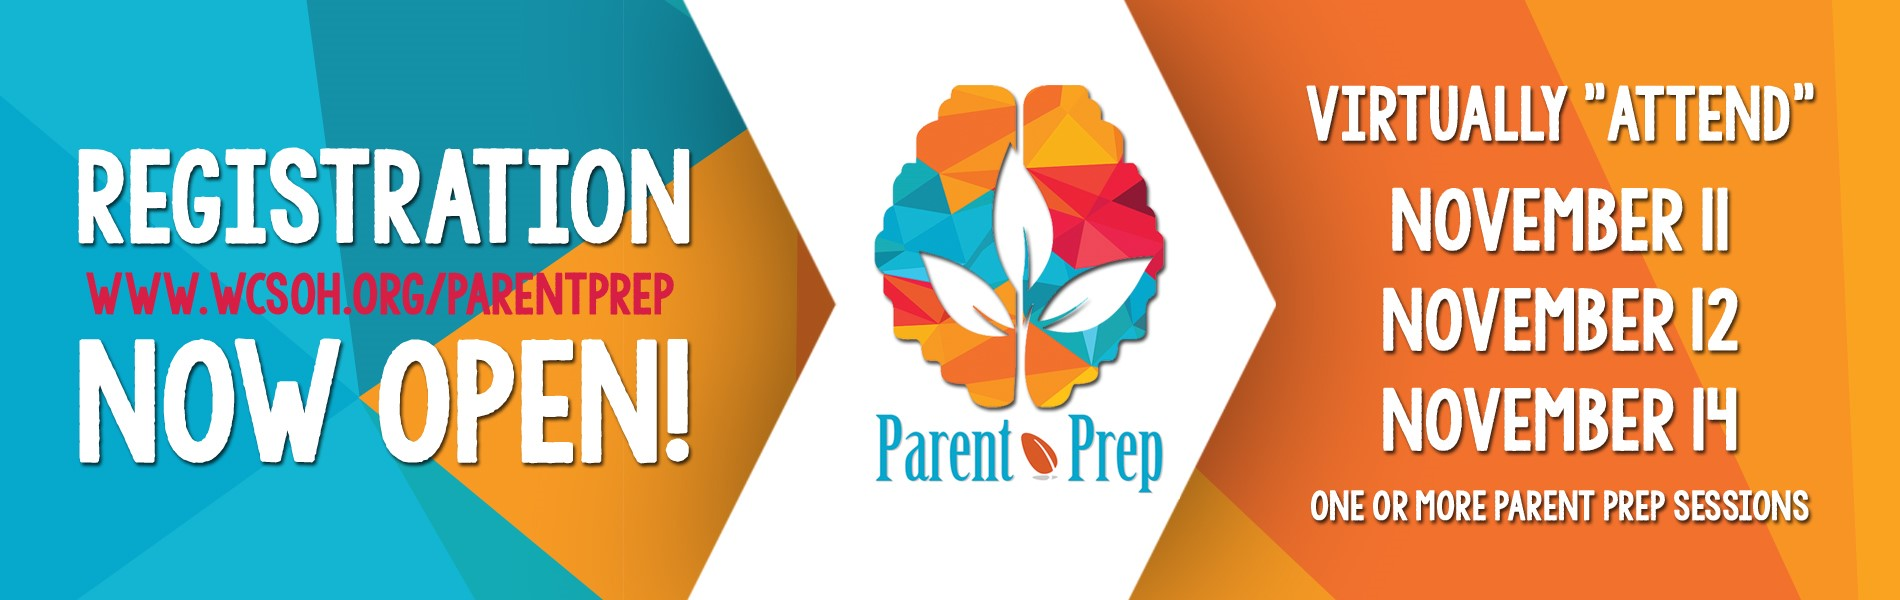 Learn more: www.WCSOH.org/ParentPrep